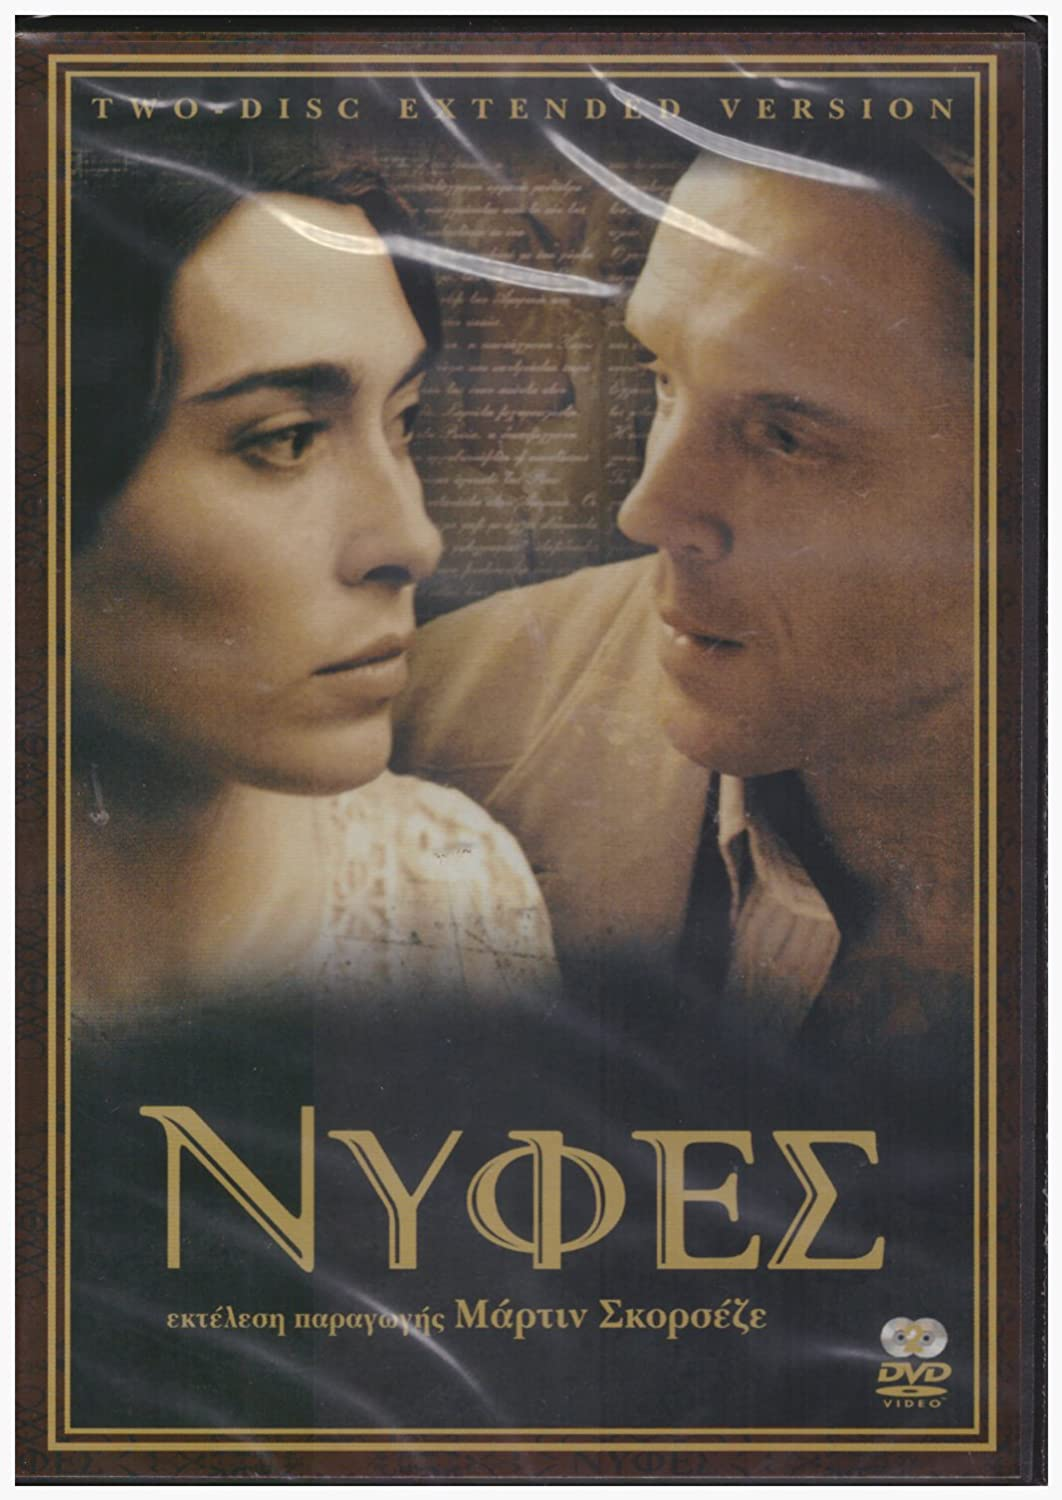 Nyfes (Brides) [Special Extended Version]: Amazon.co.uk: DVD & Blu-ray